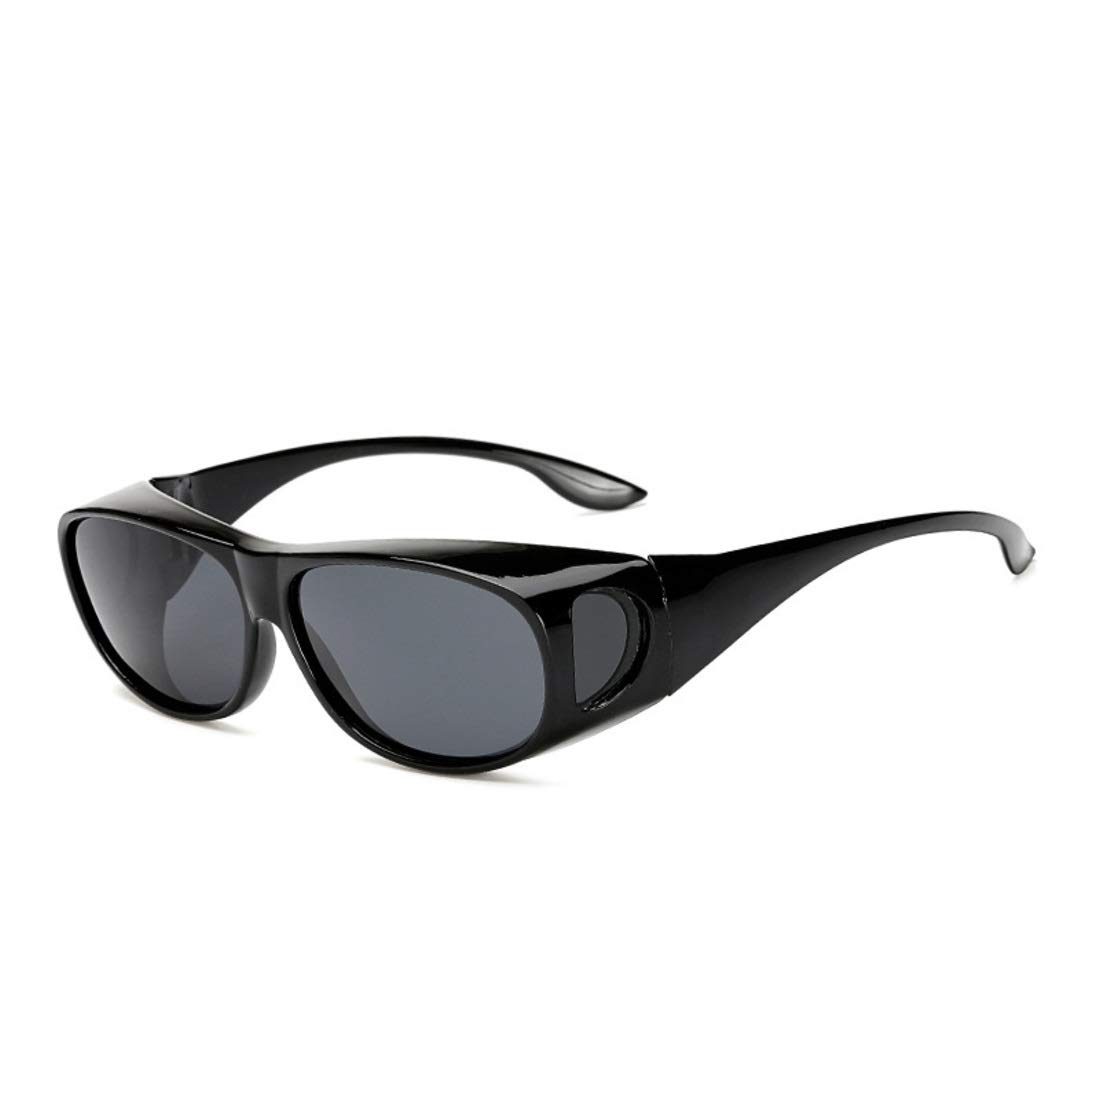 BAOYIT Men and Women Night Vision Sports Windproof Sand Glass Polarized Riding Glasses Sun Glasses Fashion Men (Color : Black) by BAOYIT